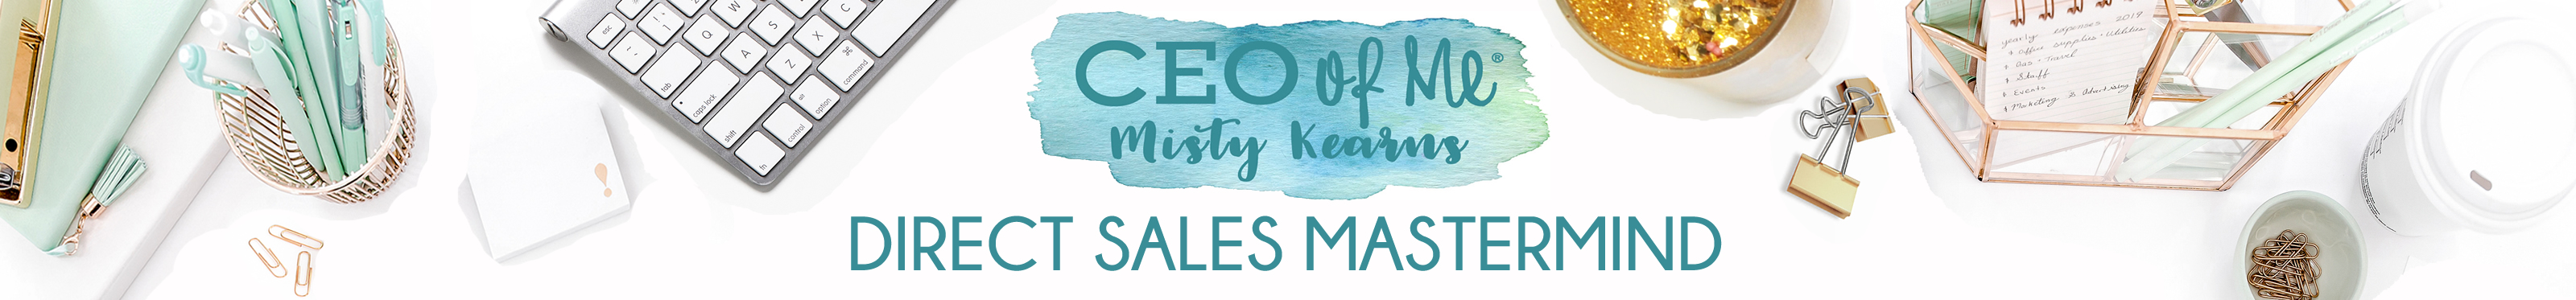 CEO of Me Direct Sales Mastermind with Misty Kearns